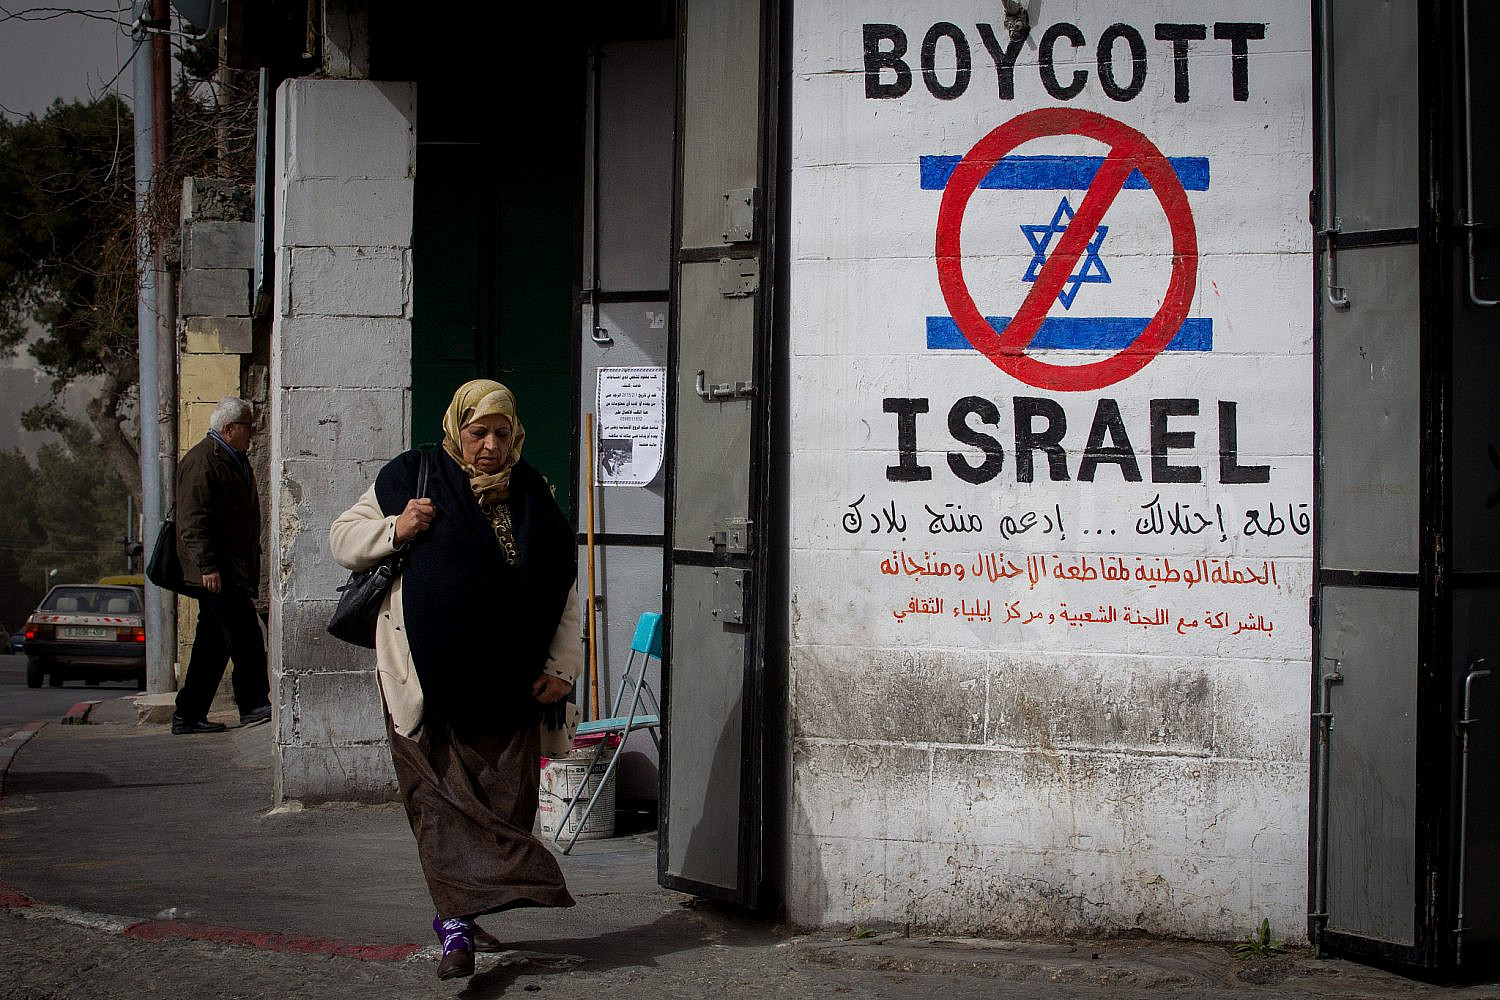 A Palestinian woman walks by a grafitti sign calling to boycott Israel seen on a street in the West Bank city of Bethlehem on February 11, 2015. (Miriam Alster/Flash 90)